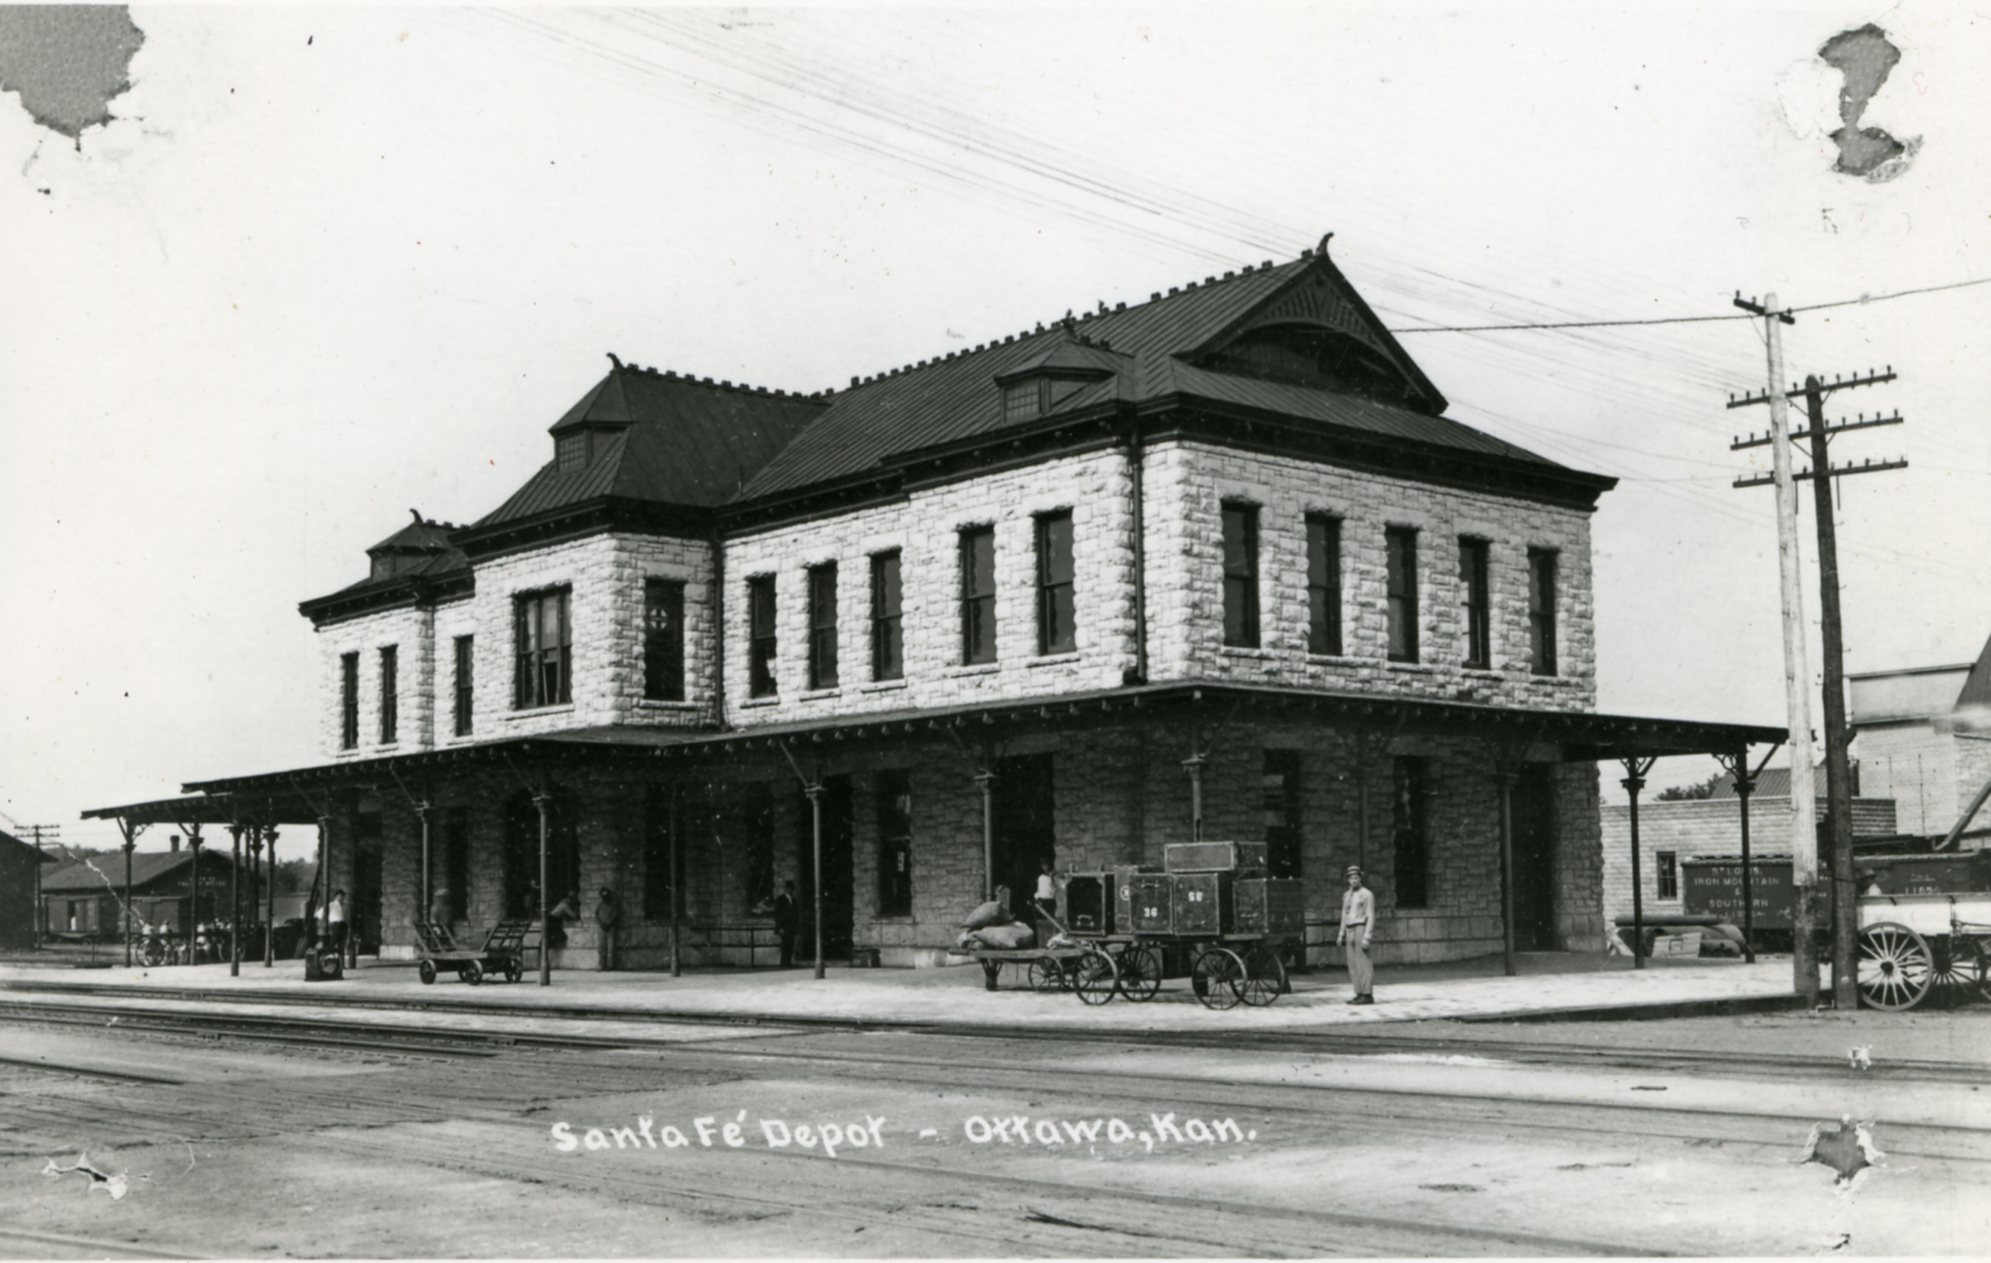 Historic photo of the Santa Fe Depot, now the Old Depot Museum. 1912.